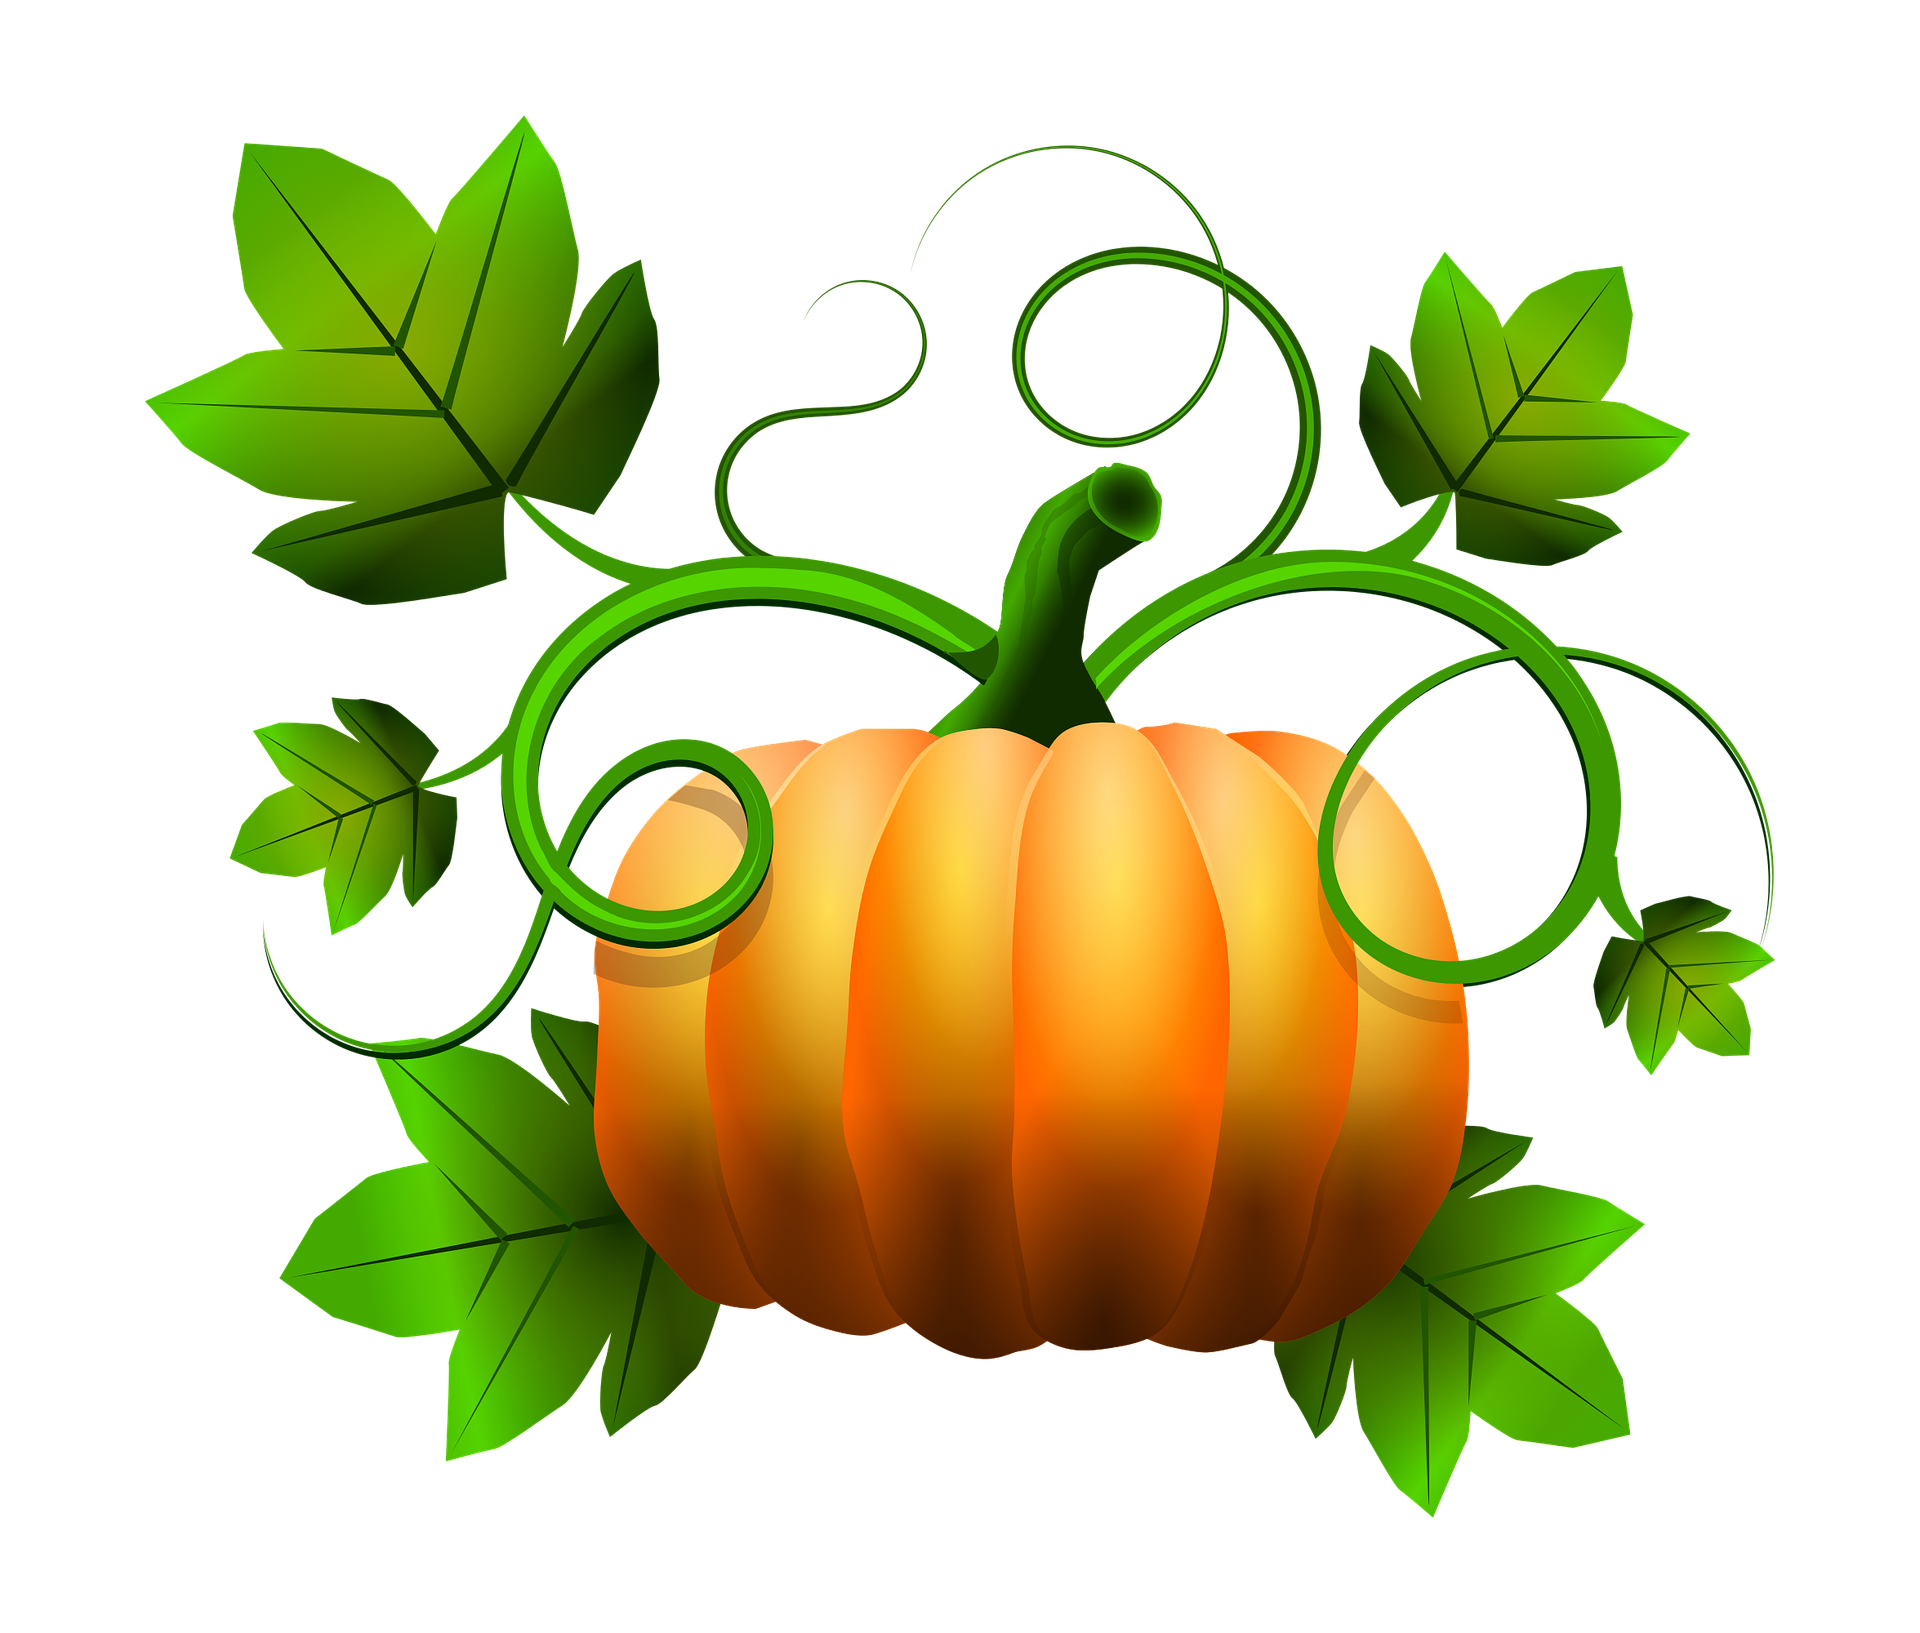 Pumpkin & leaf bars clipart graphic freeuse library Harvest Box Drive – Meals on Wheels Collin County graphic freeuse library